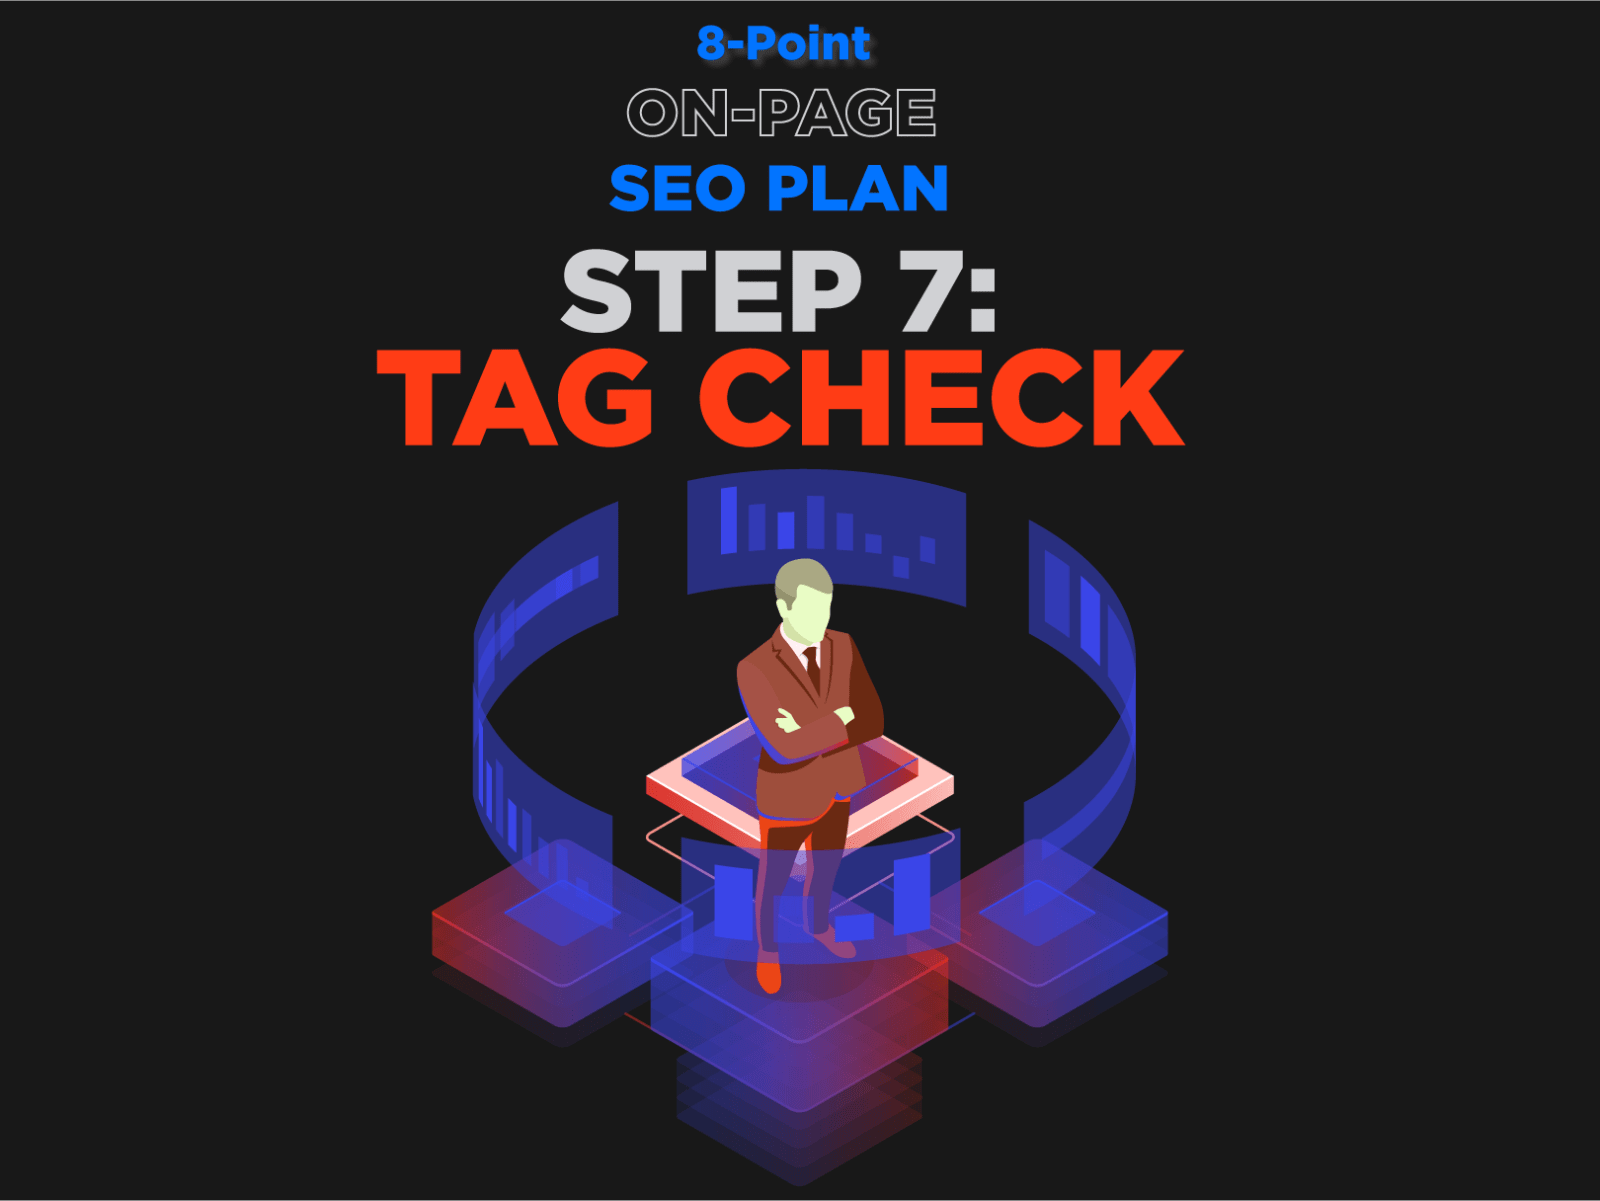 8-Point On-Page SEO Plan, Step 7: Tag Check